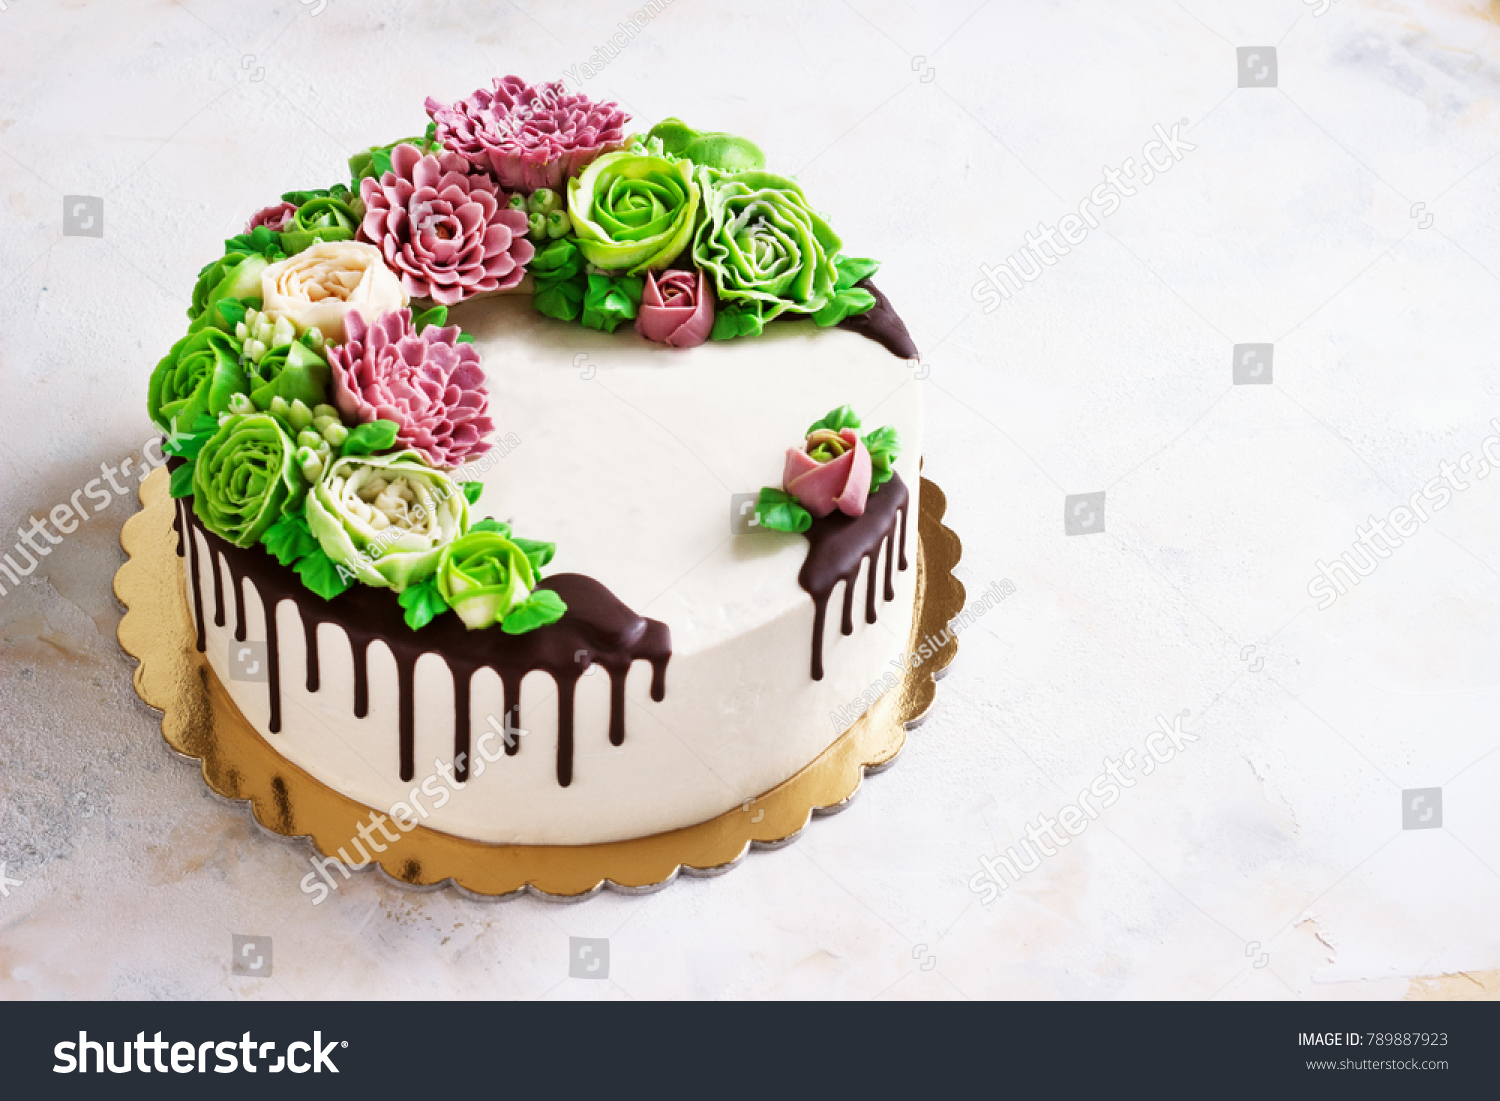 Birthday cake flowers rose on white stock photo edit now 789887923 birthday cake with flowers rose on white background malaysian flowers izmirmasajfo